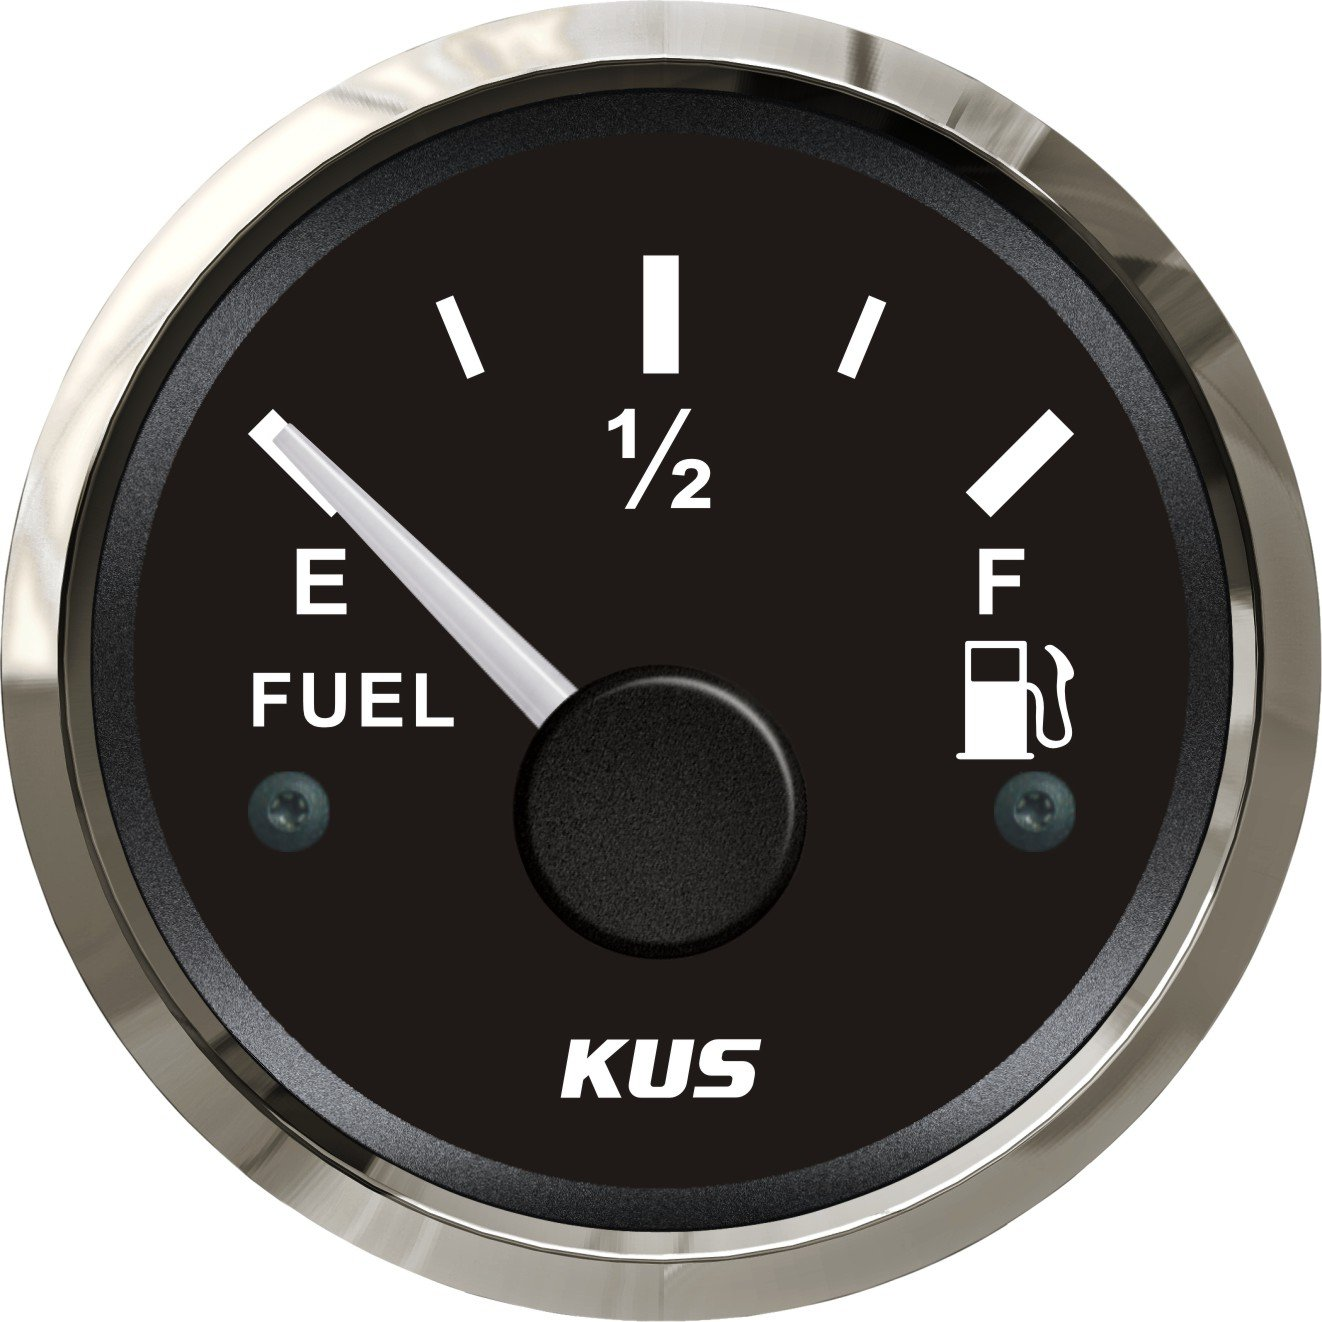 CPFR-BS-240-33 Fuel Level Gauge